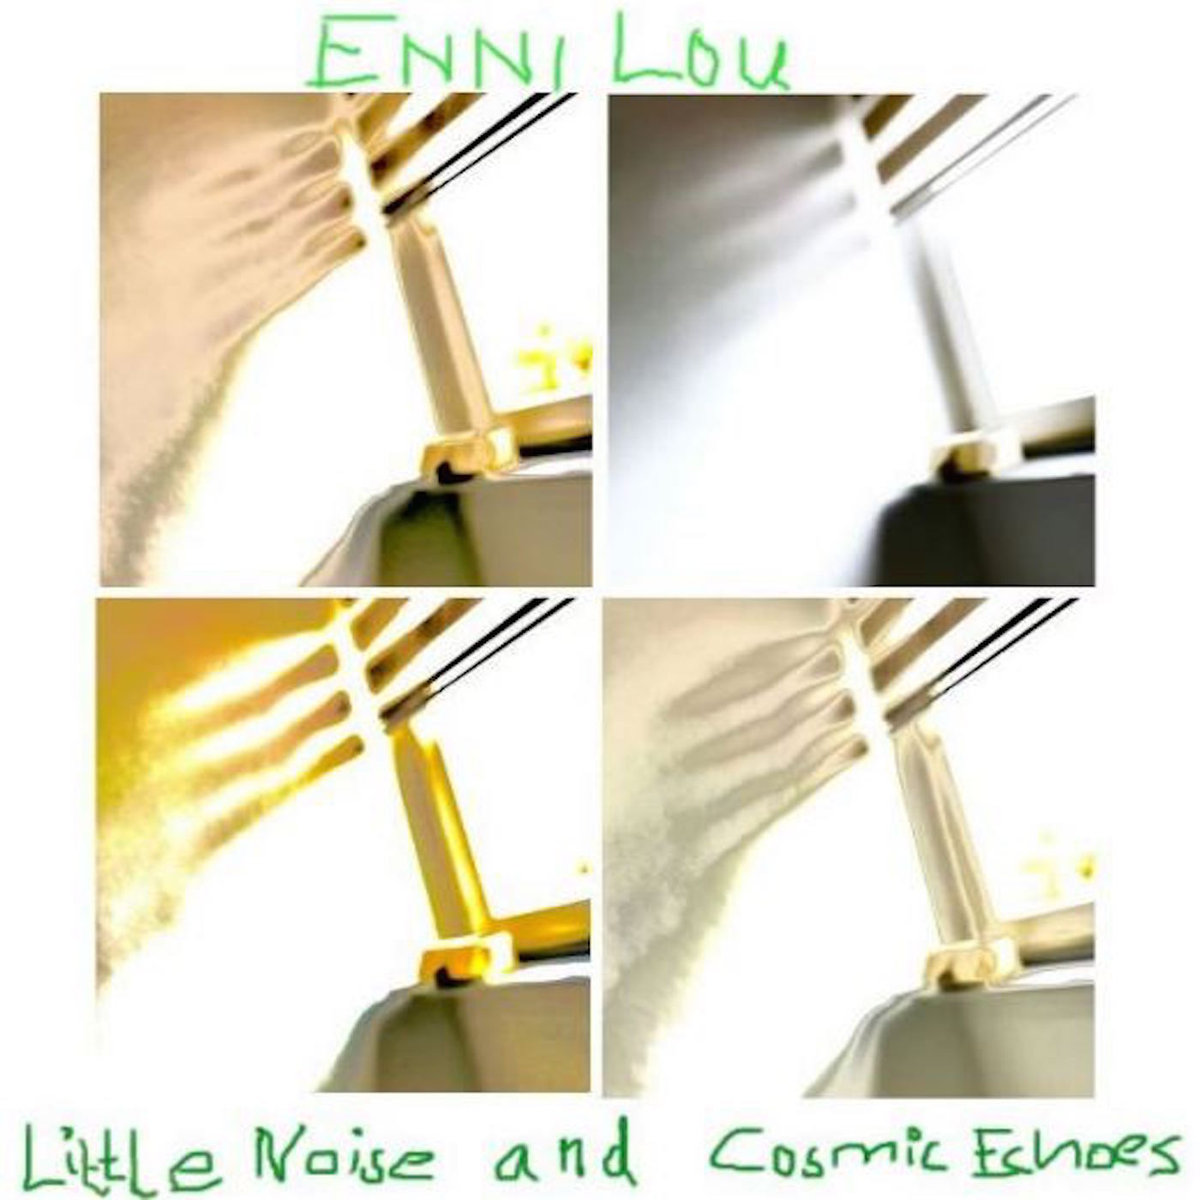 Enni Lou Little Noise and Cosmic Echoes